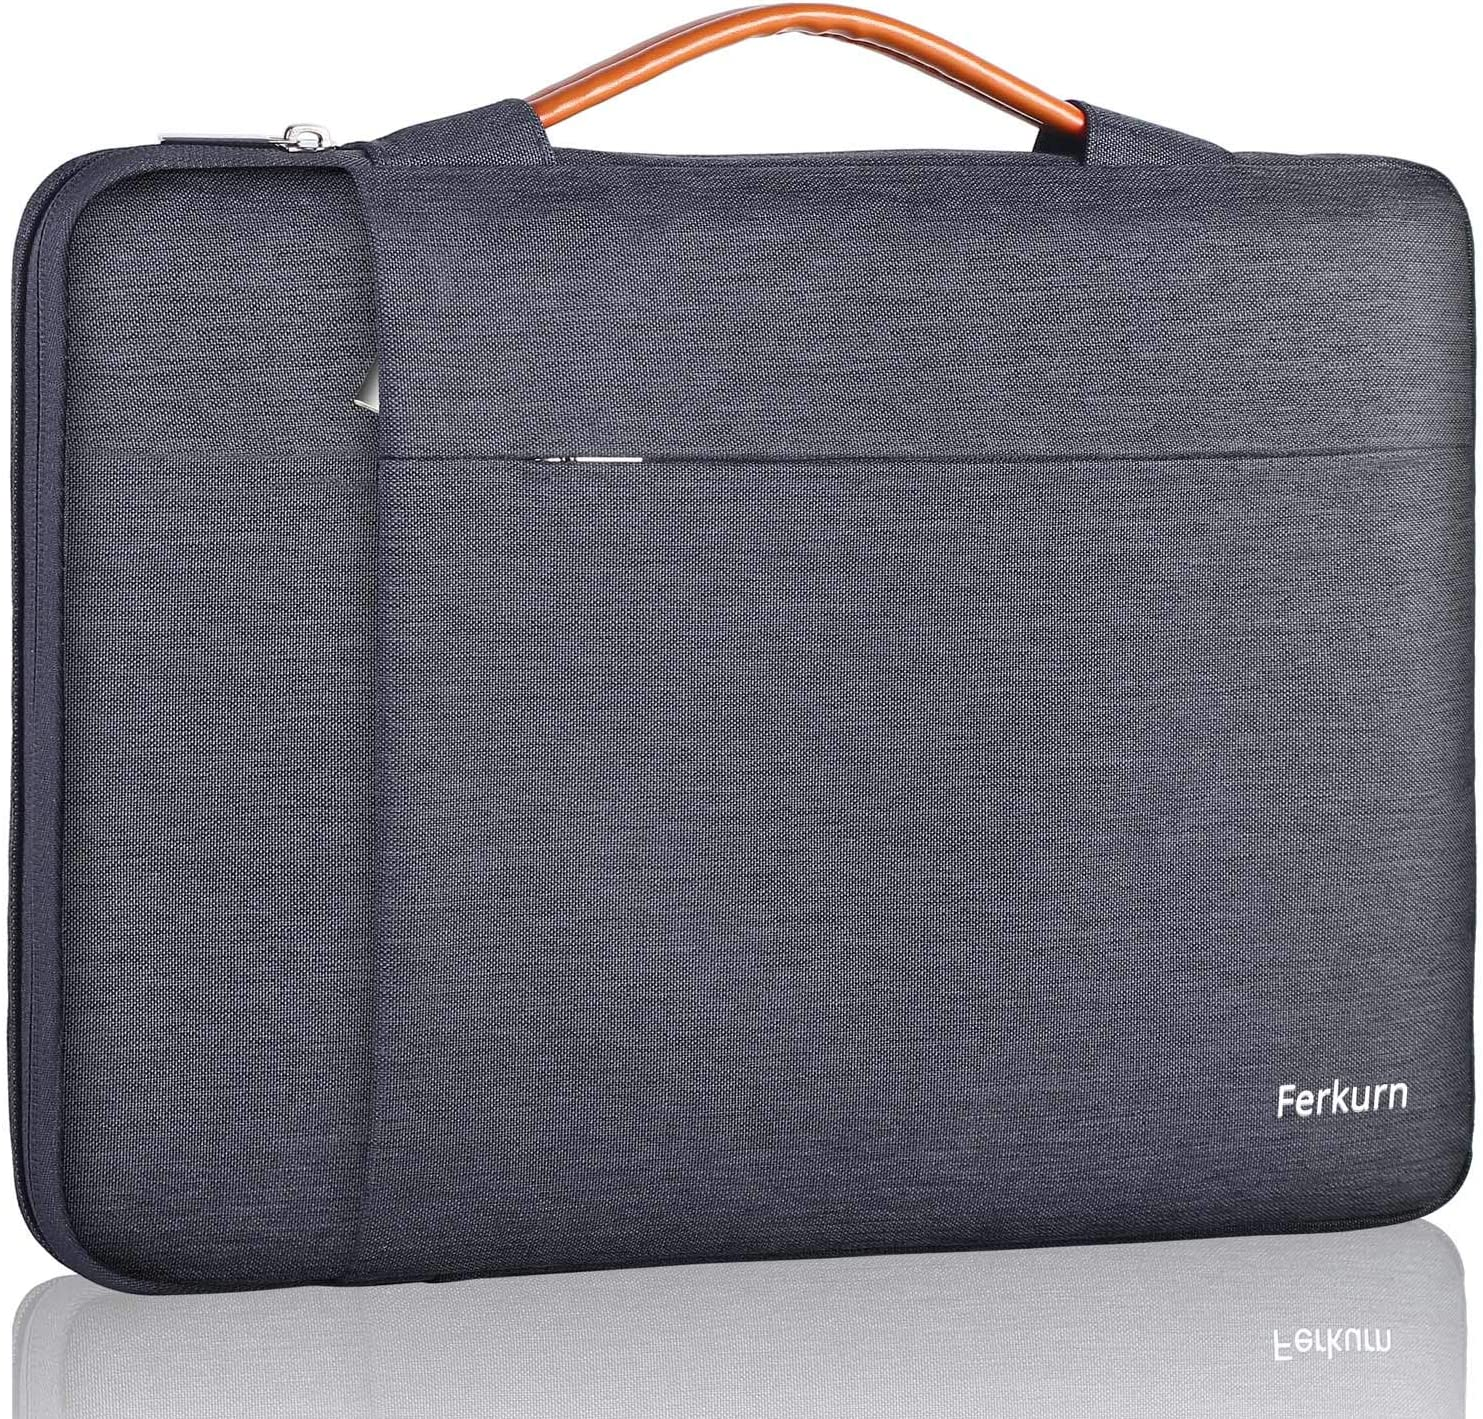 Ferkurn Chromebook Sleeve 11 11.6 Inch Laptop Case Waterproof with Handle Protective Bag Compatible with MacBook Air 11.6, Stream 11.6, MacBook Pro 13, Mac 12 Retina, Surface Pro X/7/6/5/4/3, Gray